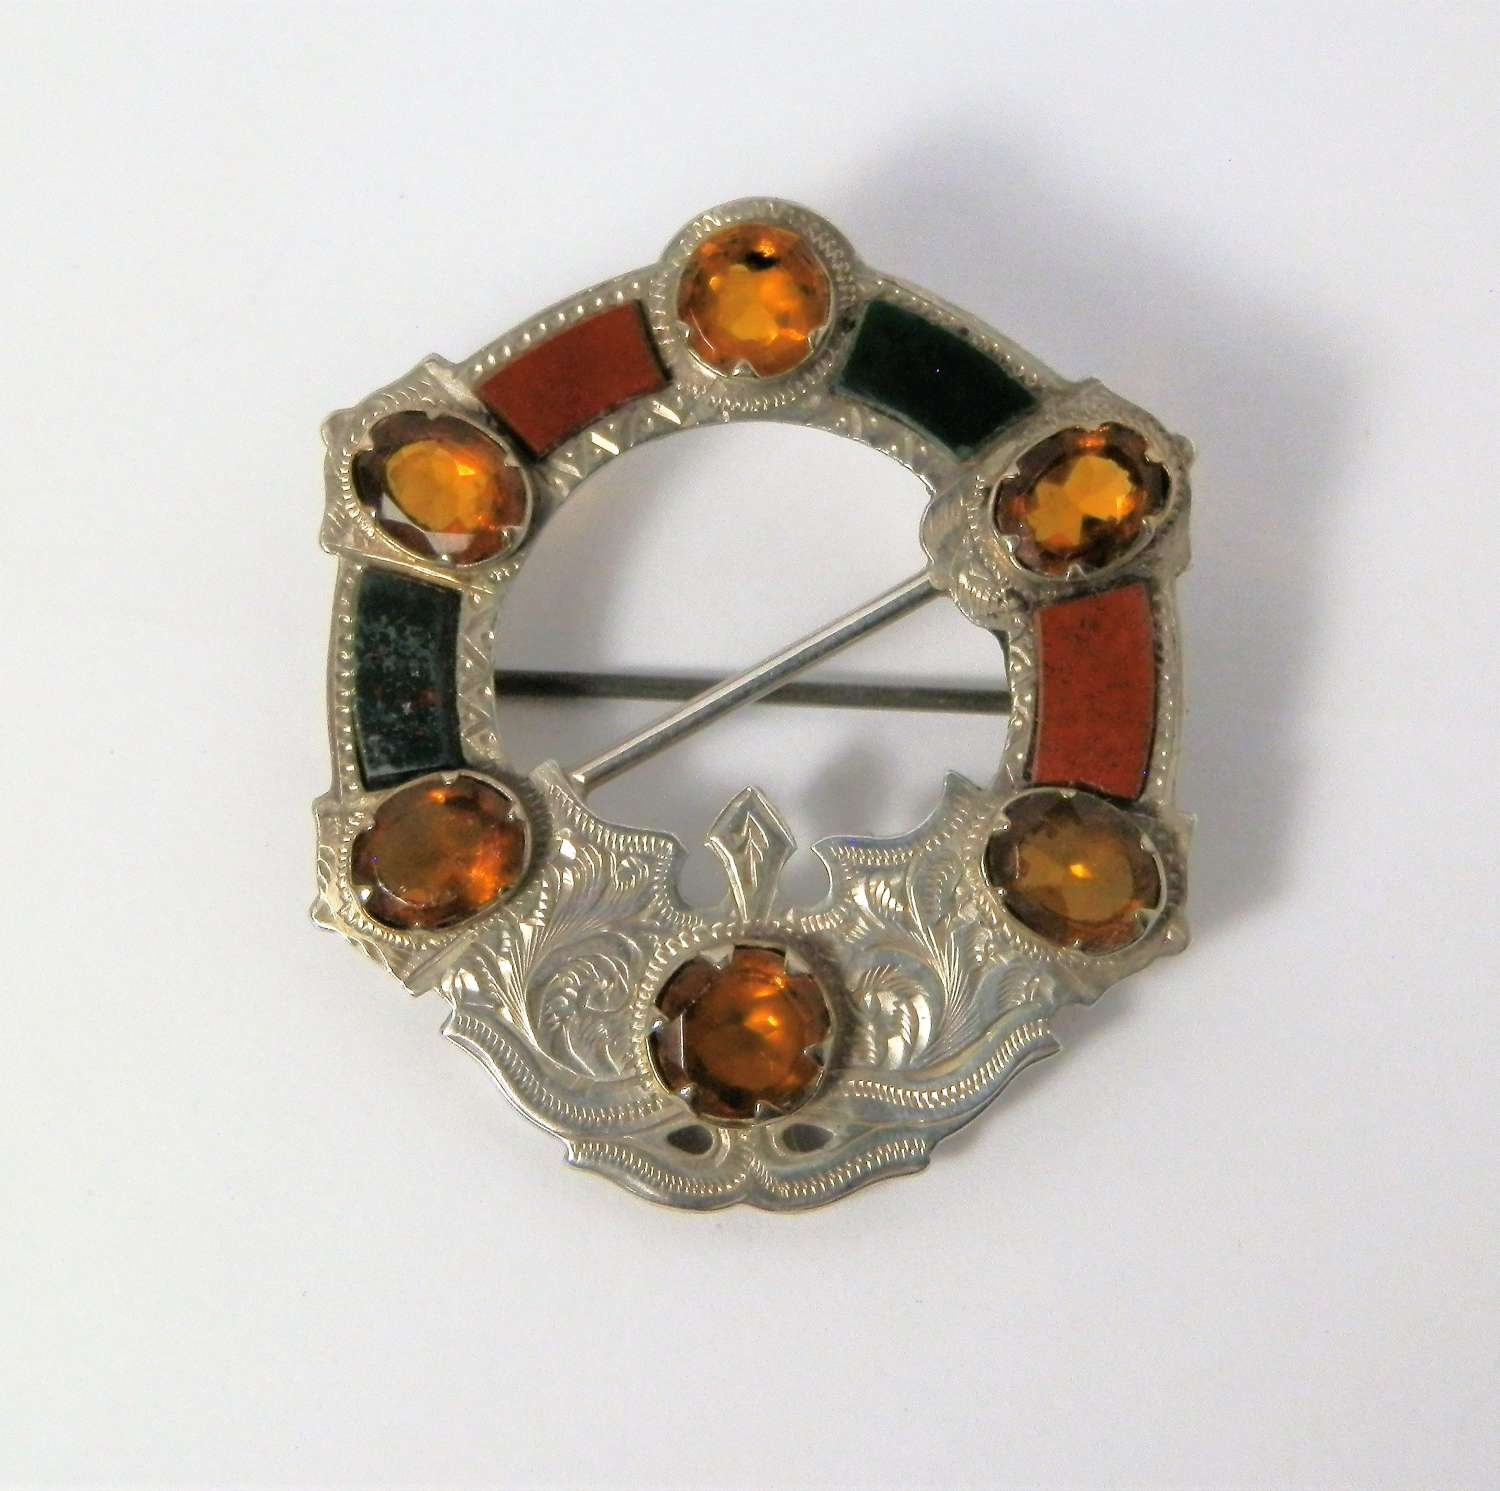 Victorian Scottish silver, agate and citrine brooch, 1874